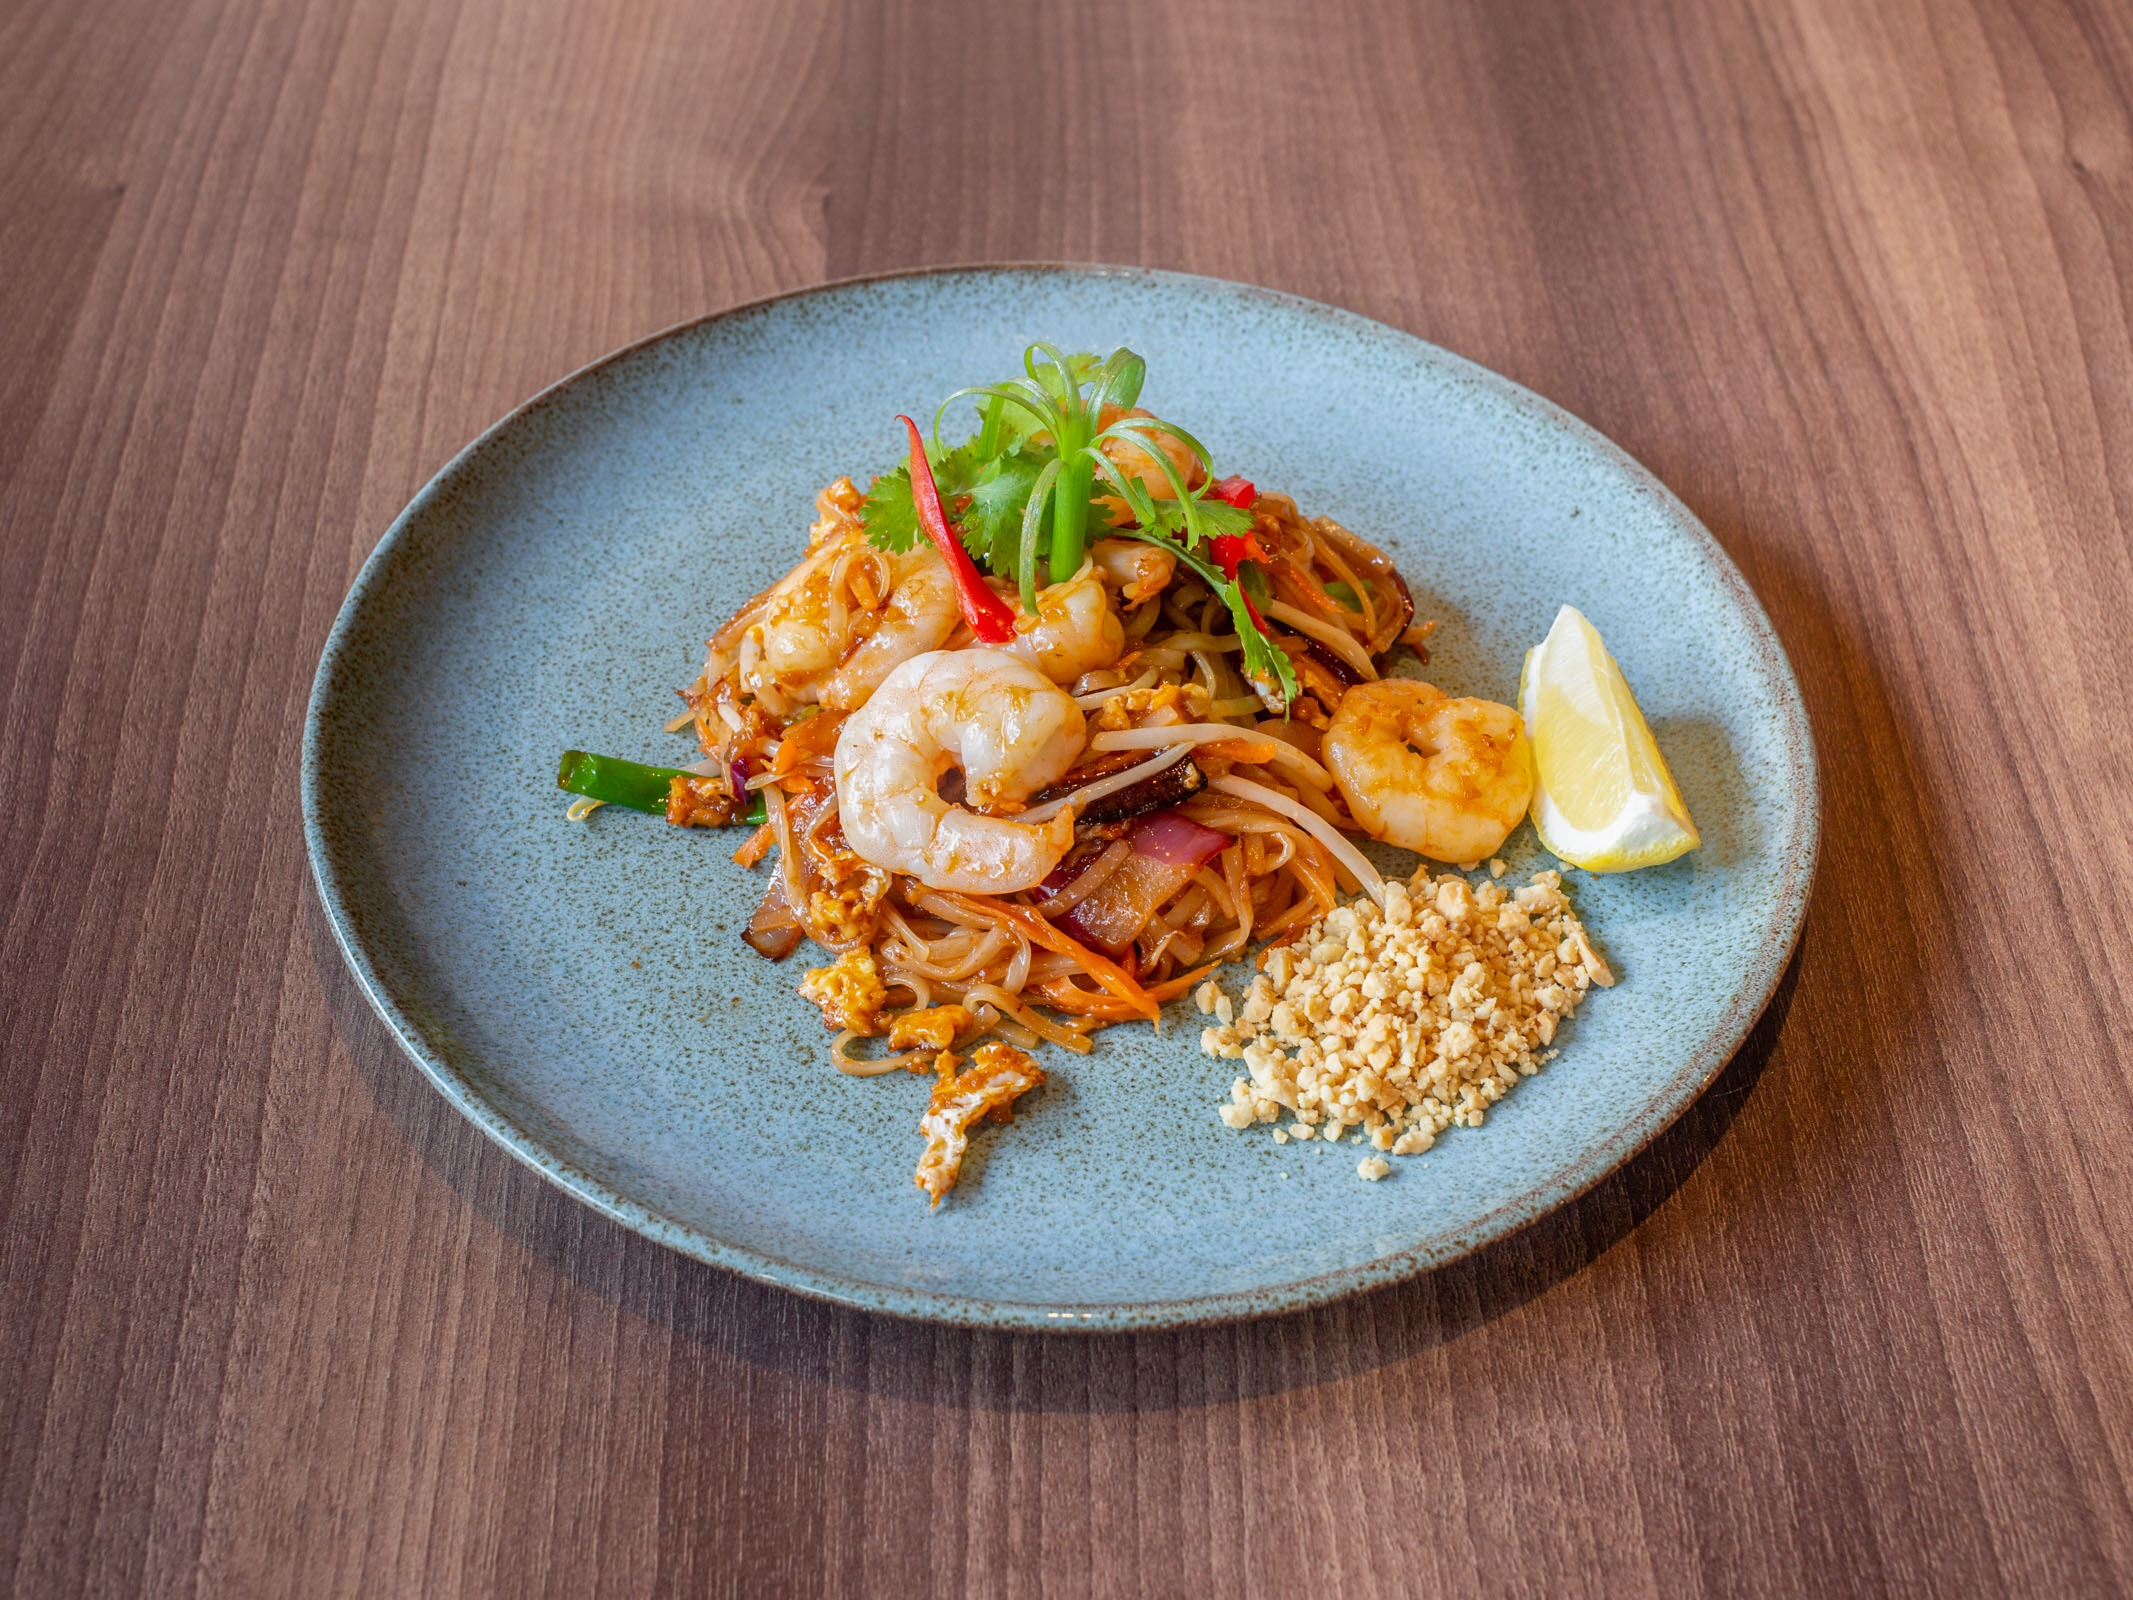 114857_TheOldSiam_Food_PadThai